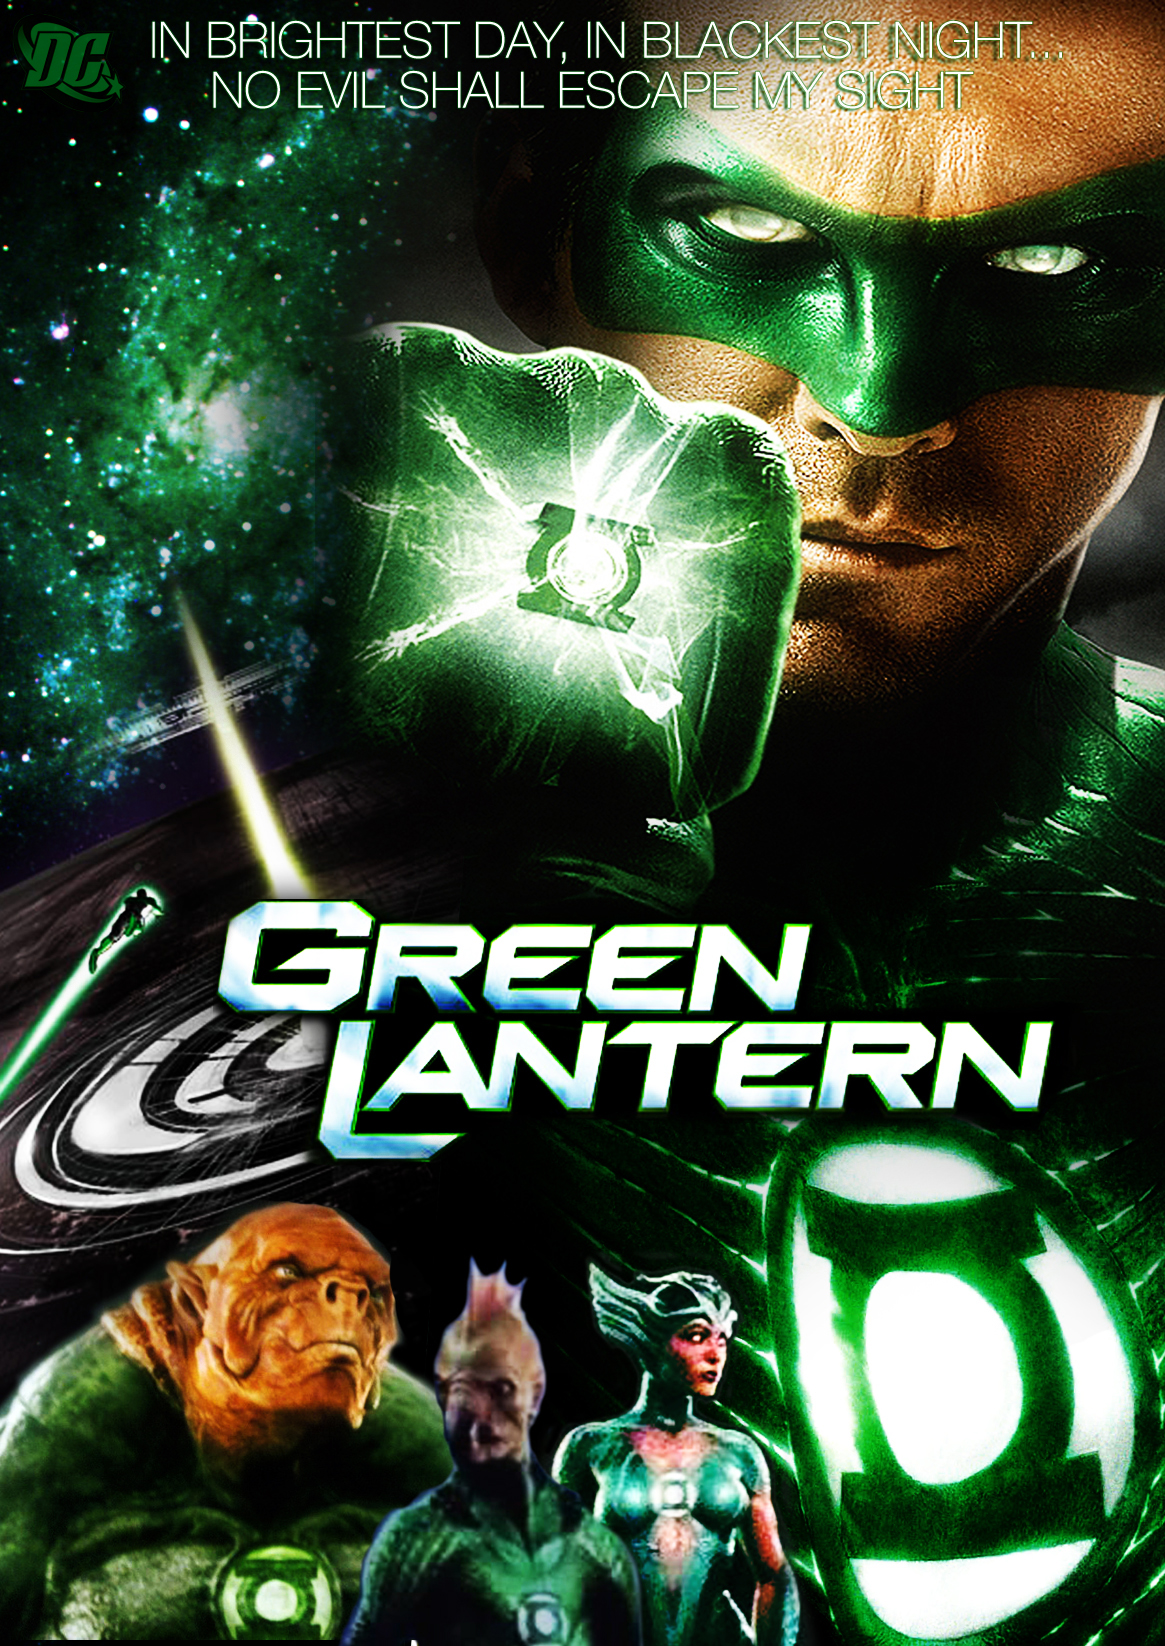 GREEN LANTERN MOVIE POSTER by Alex4everdn on DeviantArt Green Lantern Movie Poster